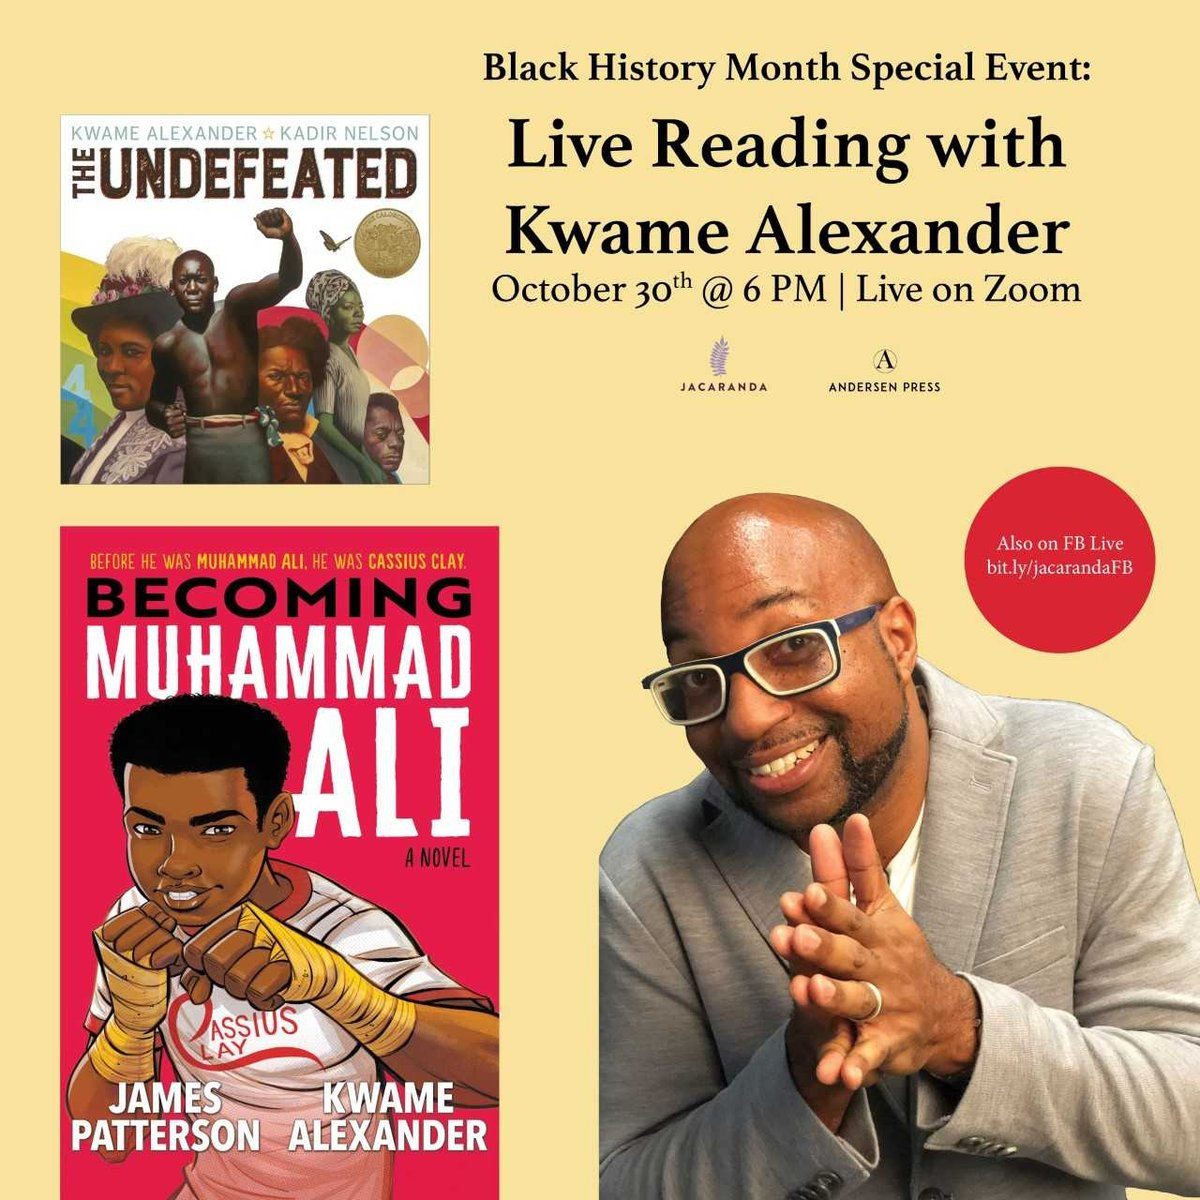 .@AndersenPress and @JacarandaBooks partner for an author reading event celebrating Black History Month, with @kwamealexander, promising two incredible works for the whole family to enjoy during this half term break! bit.ly/35vLNCK